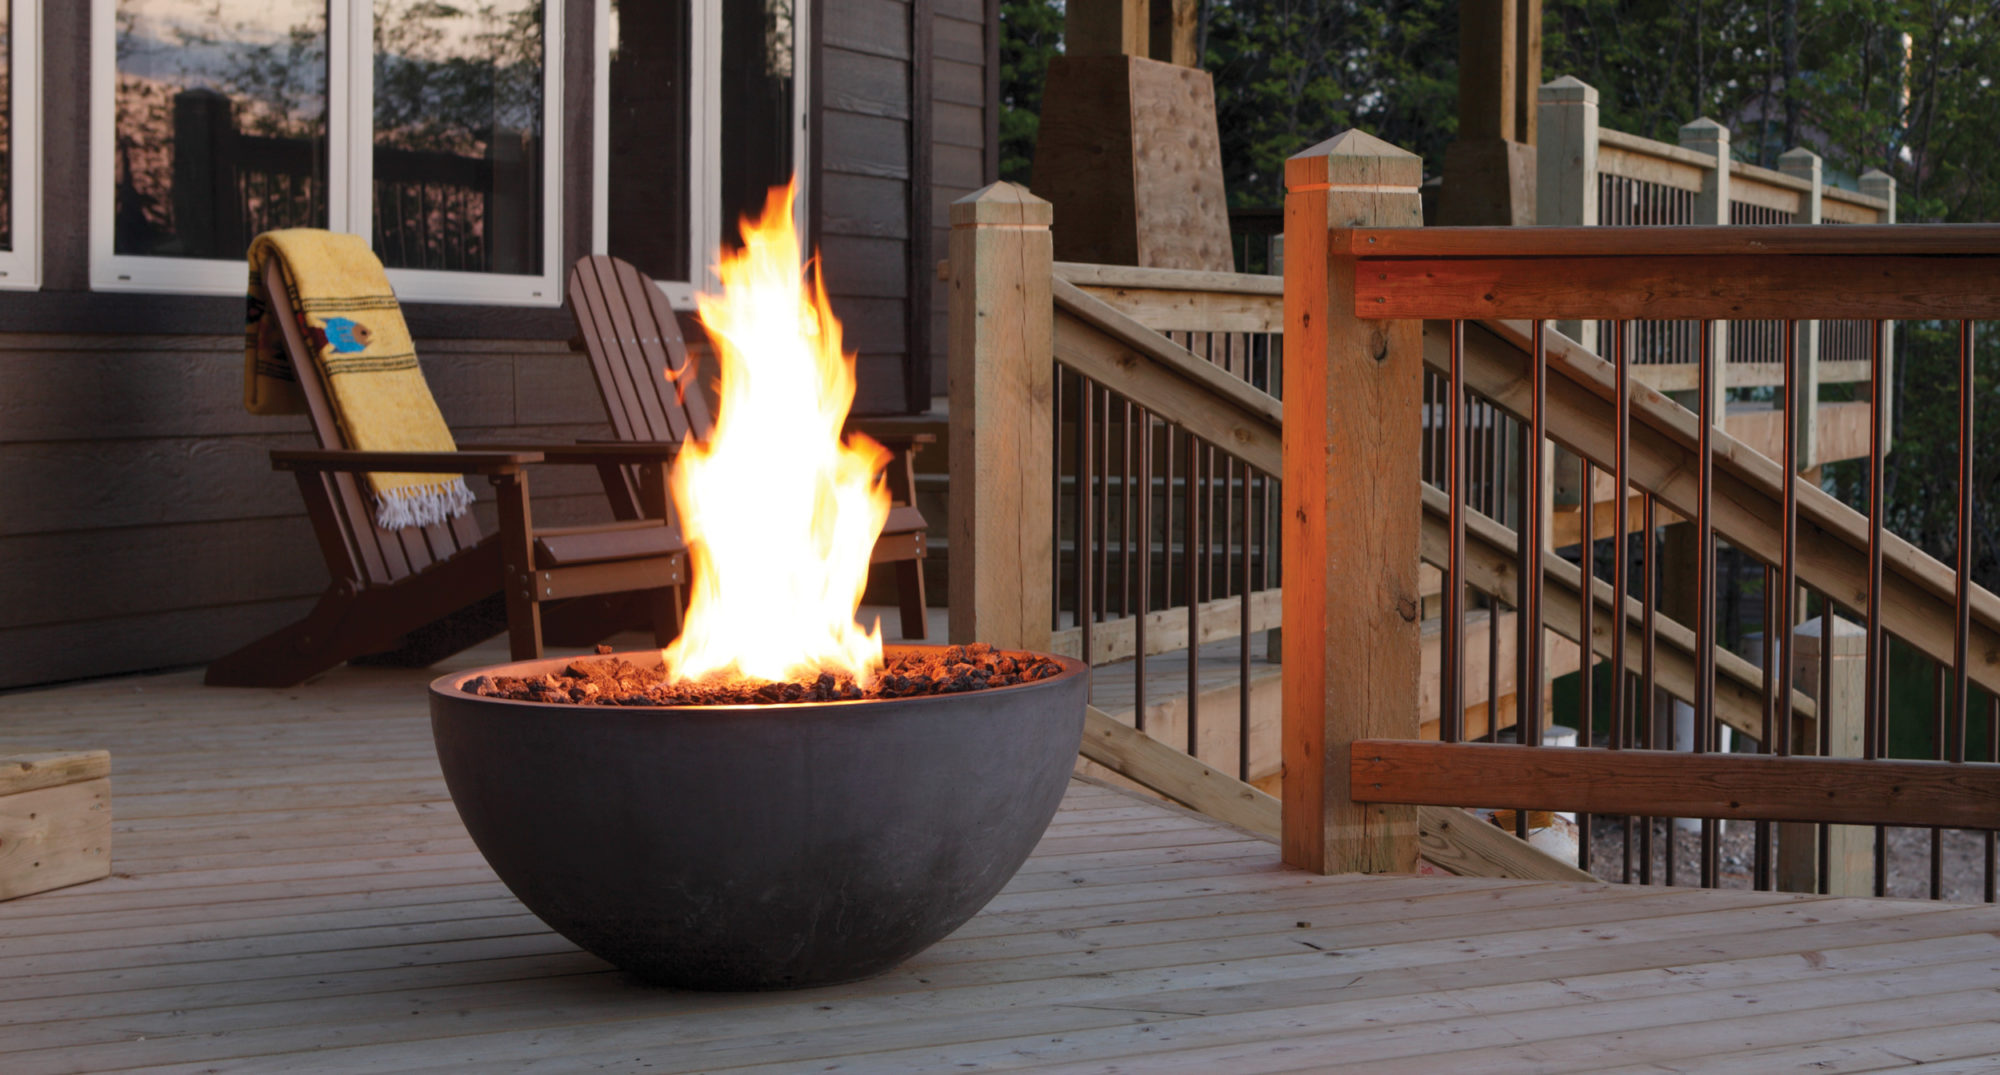 Barbara Jean Fire Pits Outdoor Fireplace Toronto Best Price